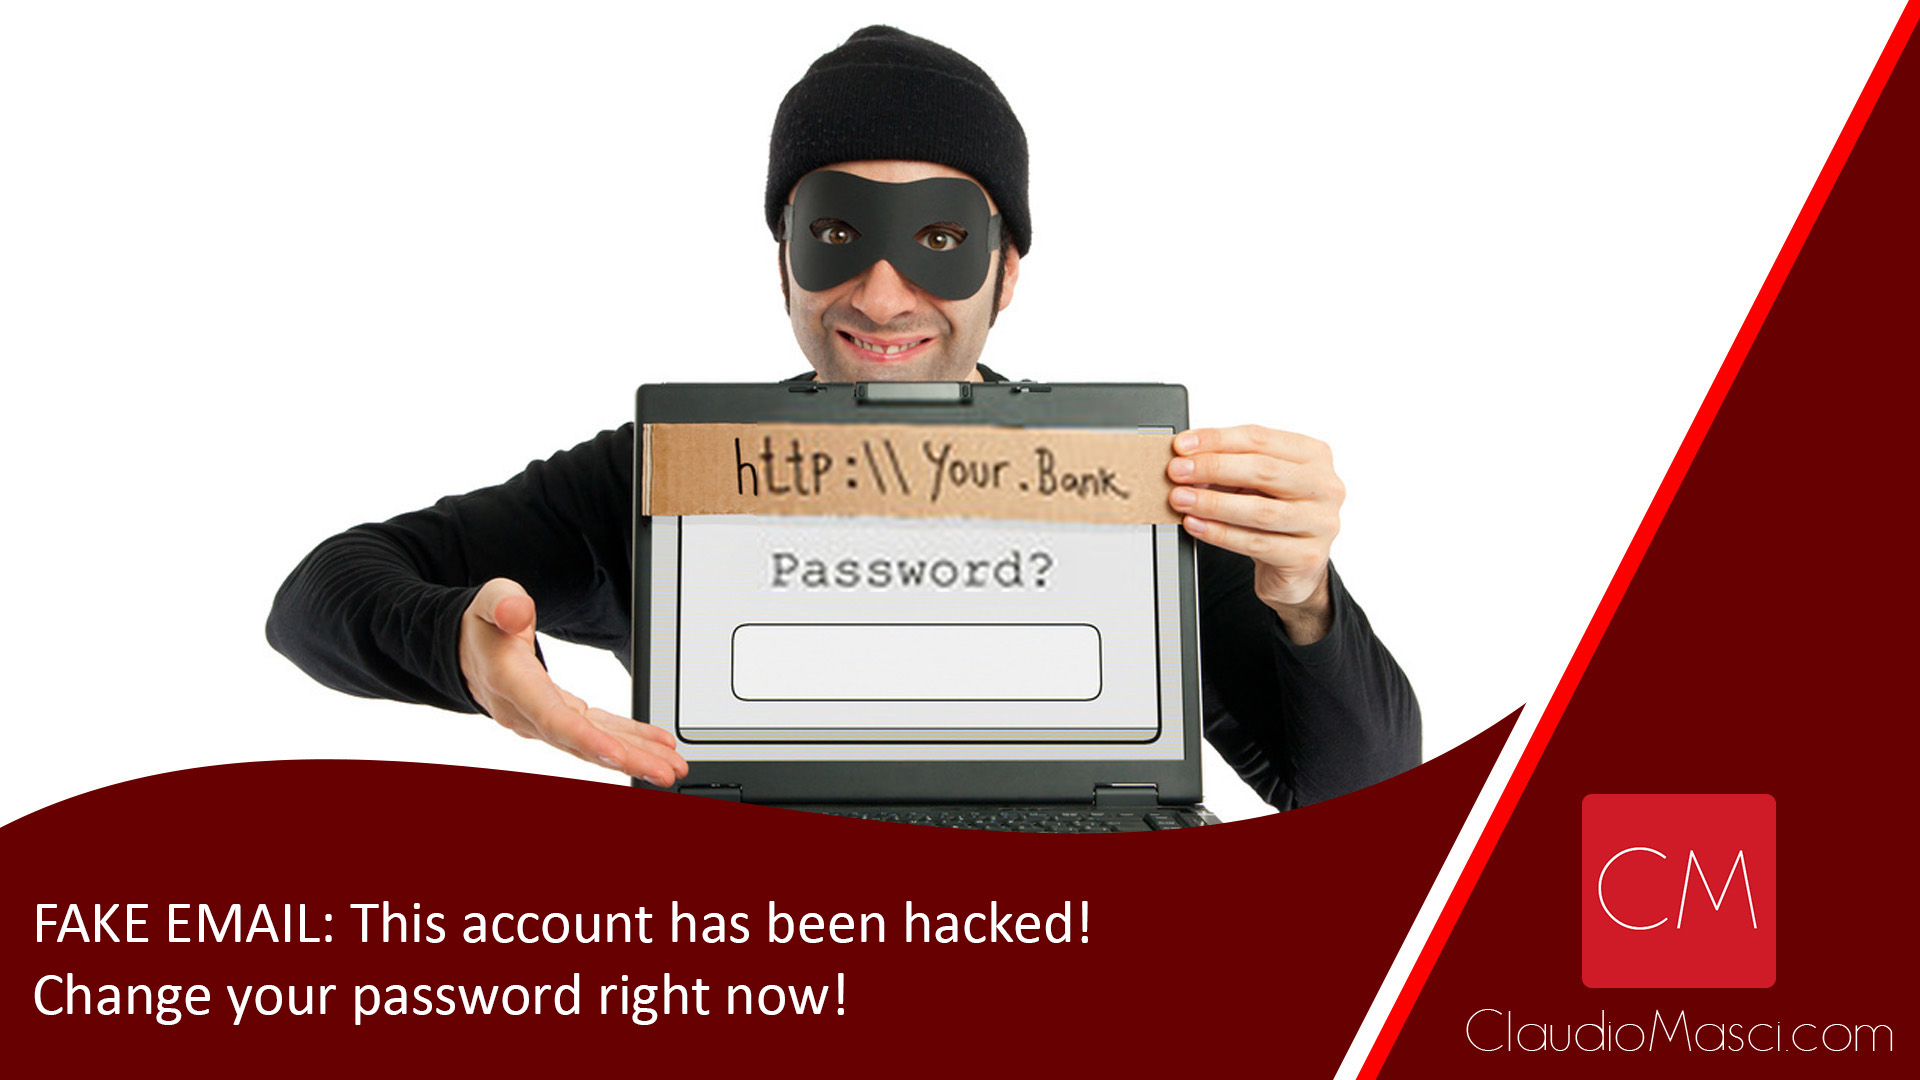 FAKE EMAIL: This account has been hacked! Change your password right now!